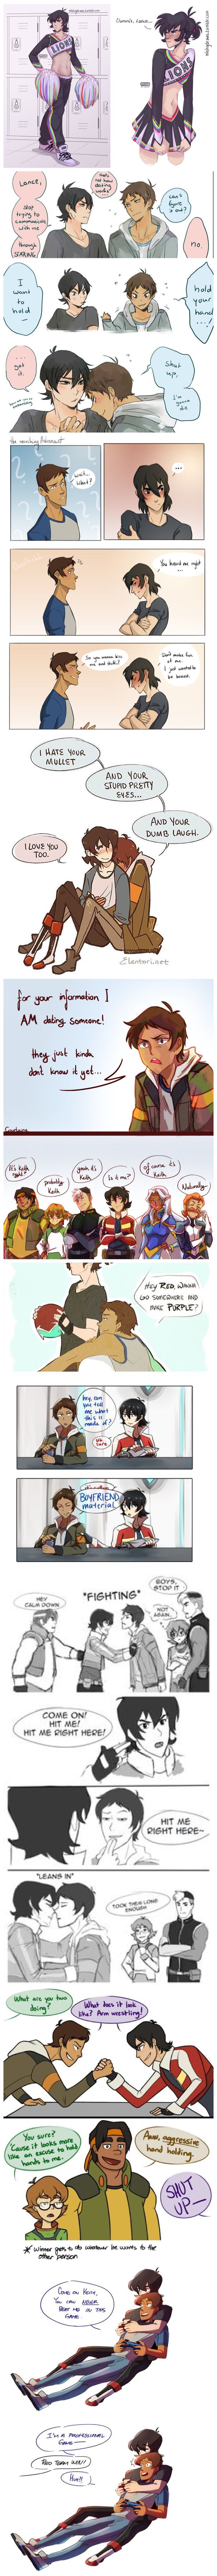 This is from Voltron Legendary Defender. Please tell me this is not what happened.